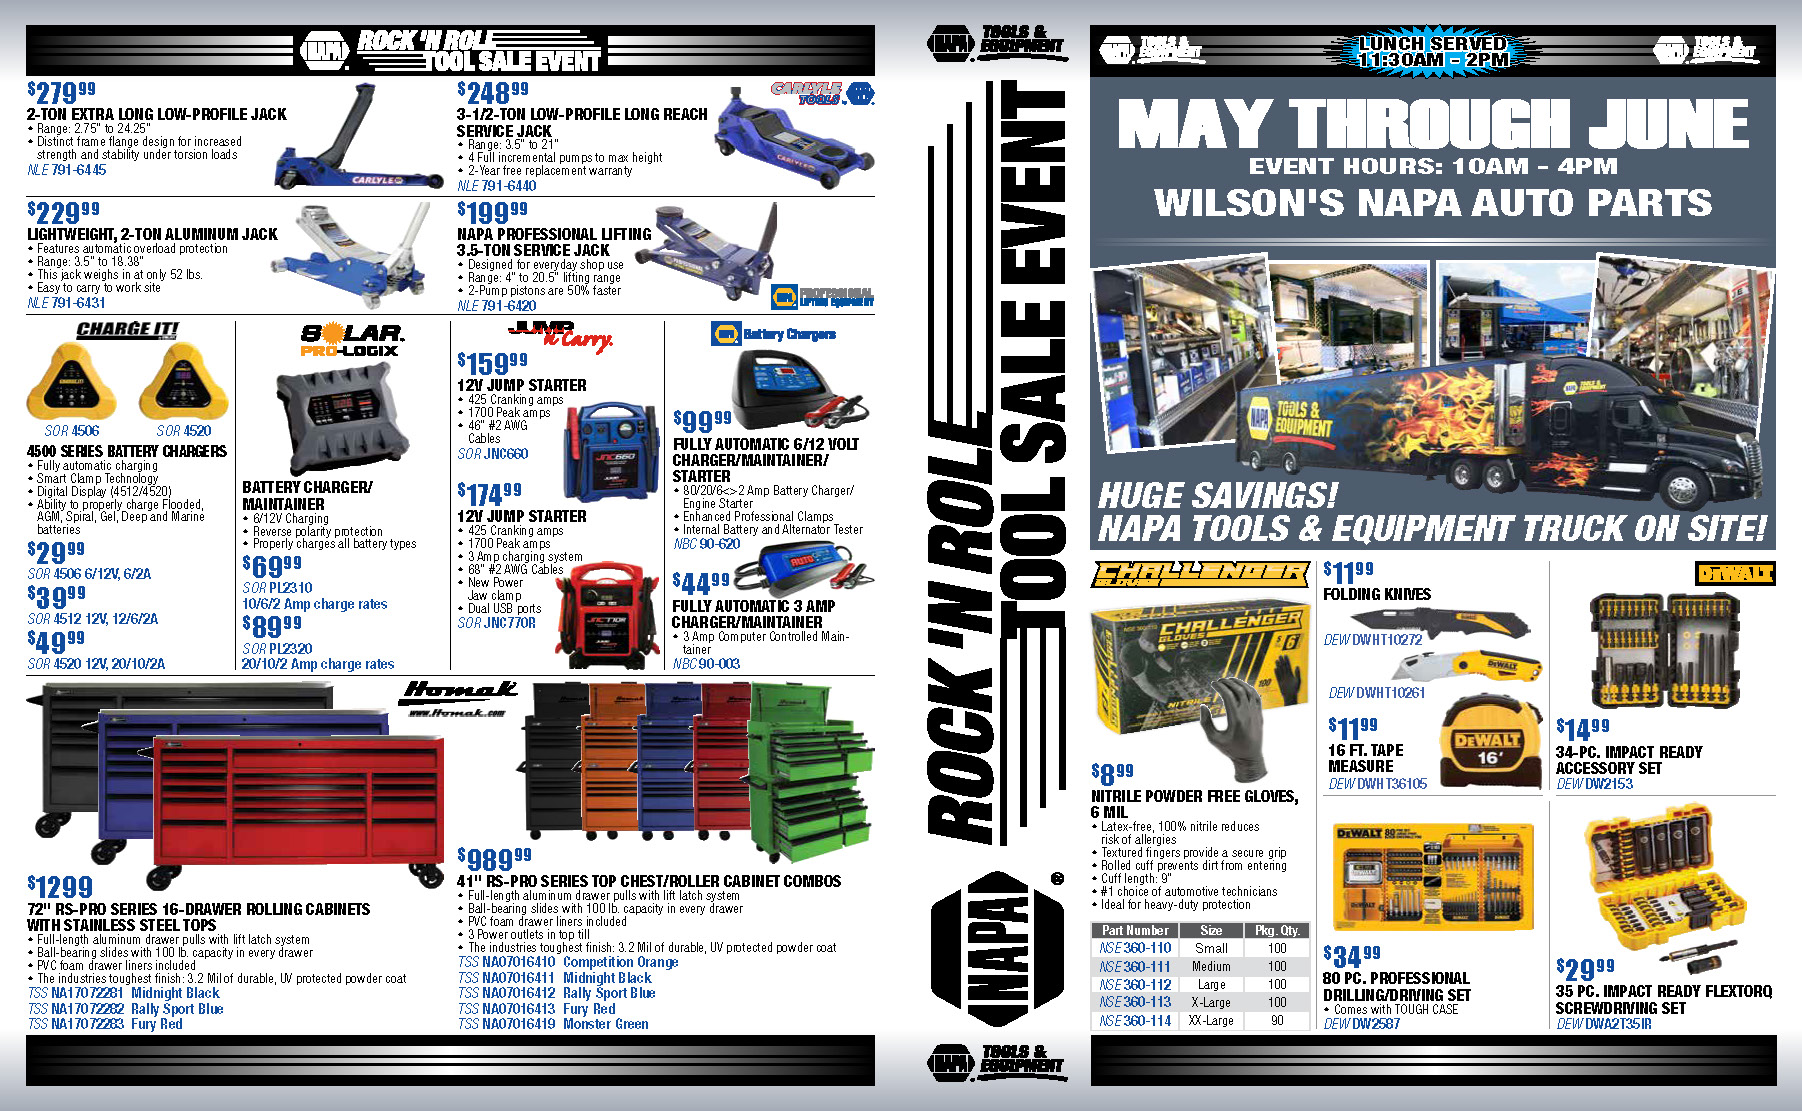 MAY /JUNE NAPA TOOL SALE EVENT IS HERE!!!! | Wilsons NAPA